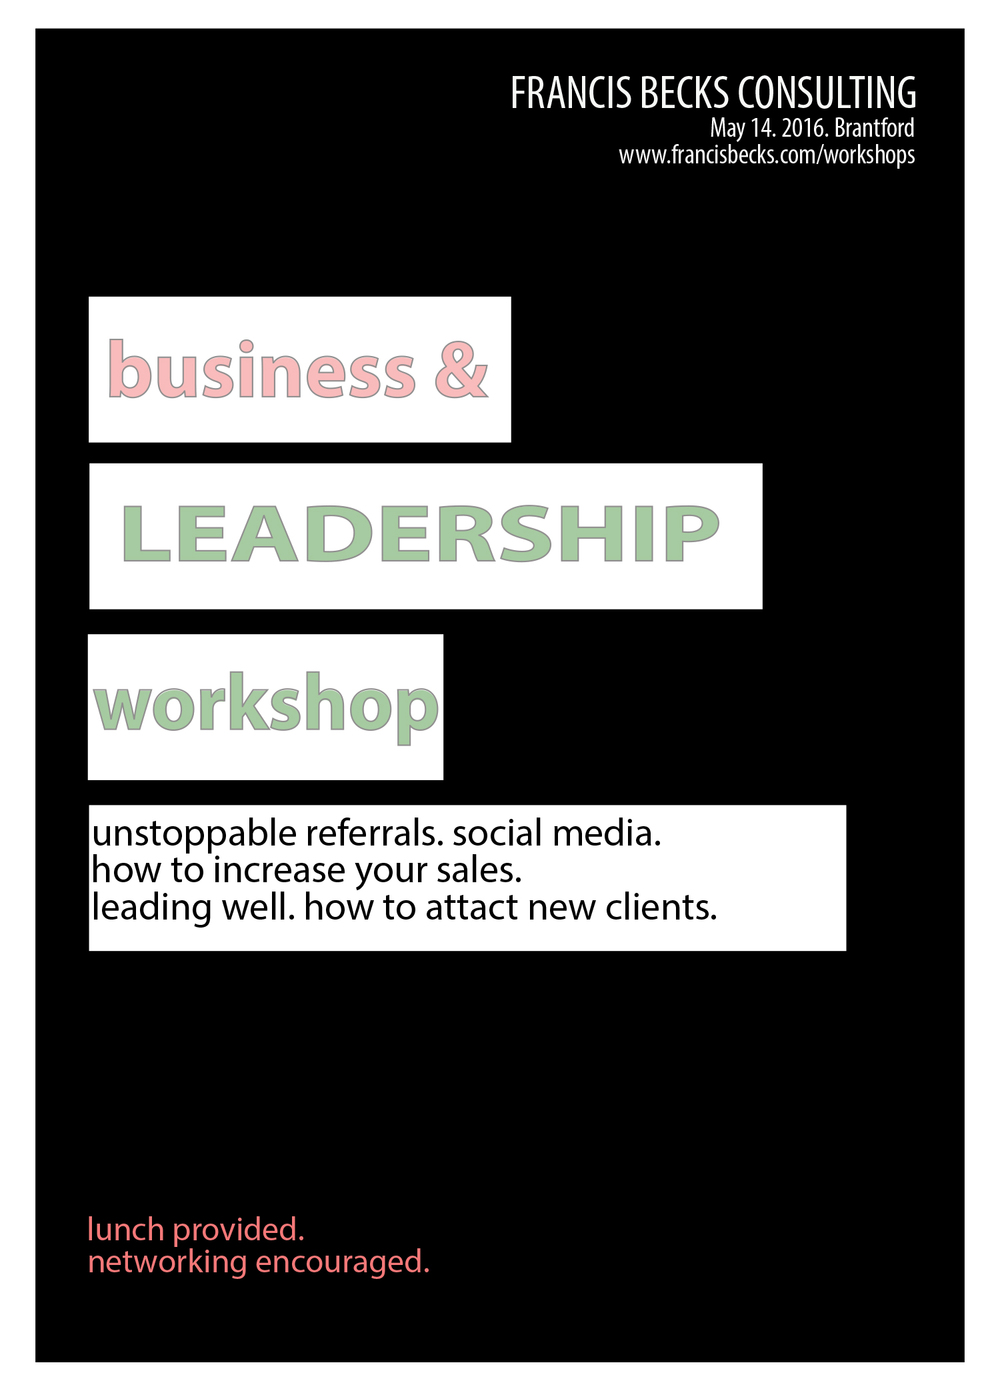 A business workshop for business owners, entrepreneurs, managers and leaders. For anyone who is committed to growth, learning and thinking outside the box.